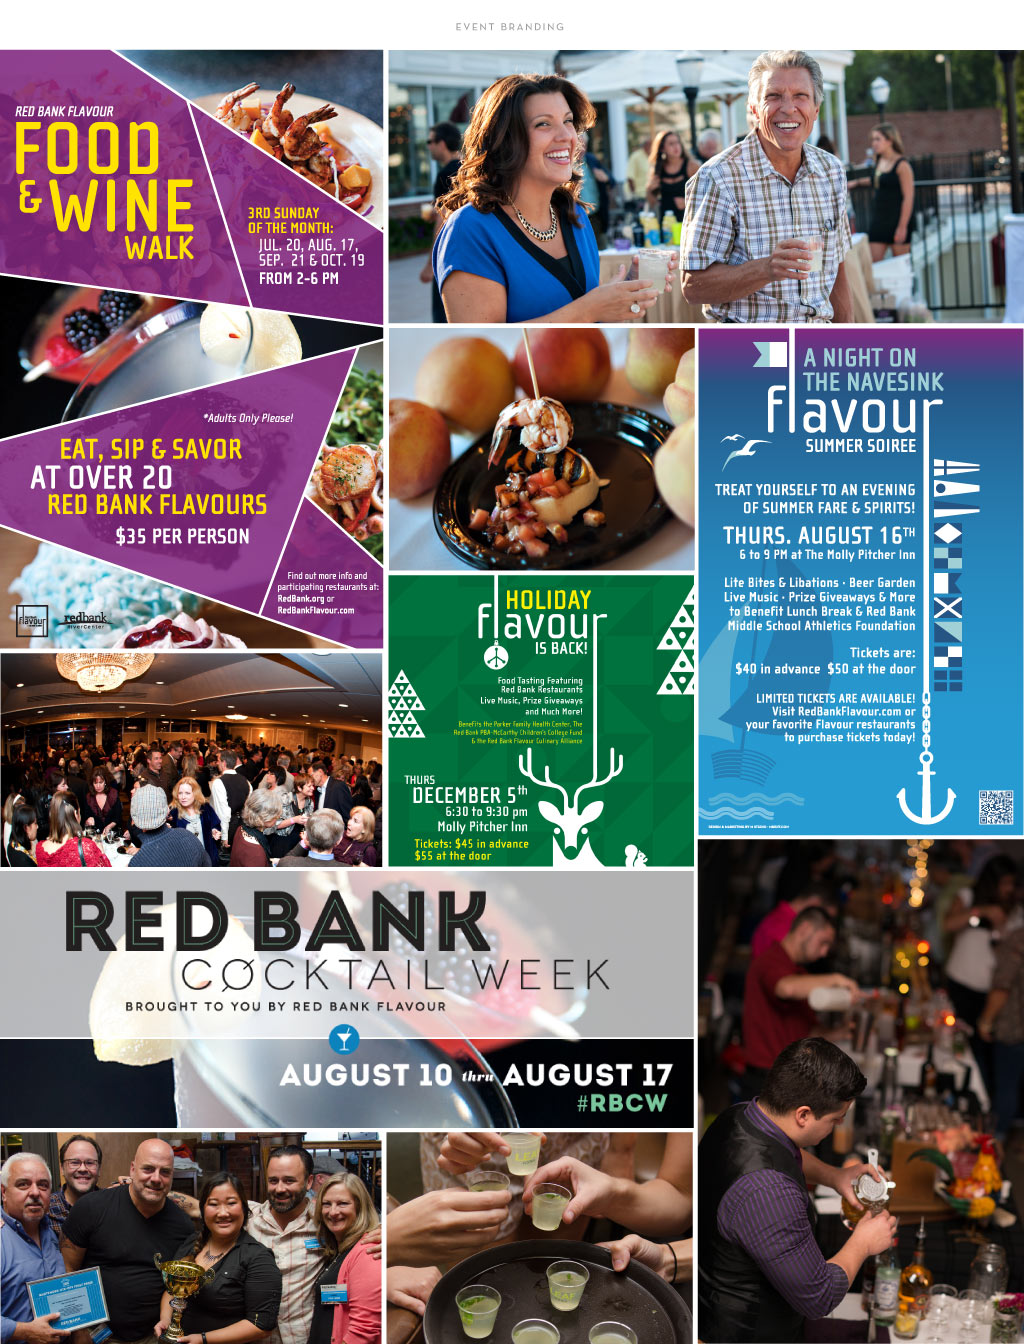 Red Bank Flavour event branding by M studio